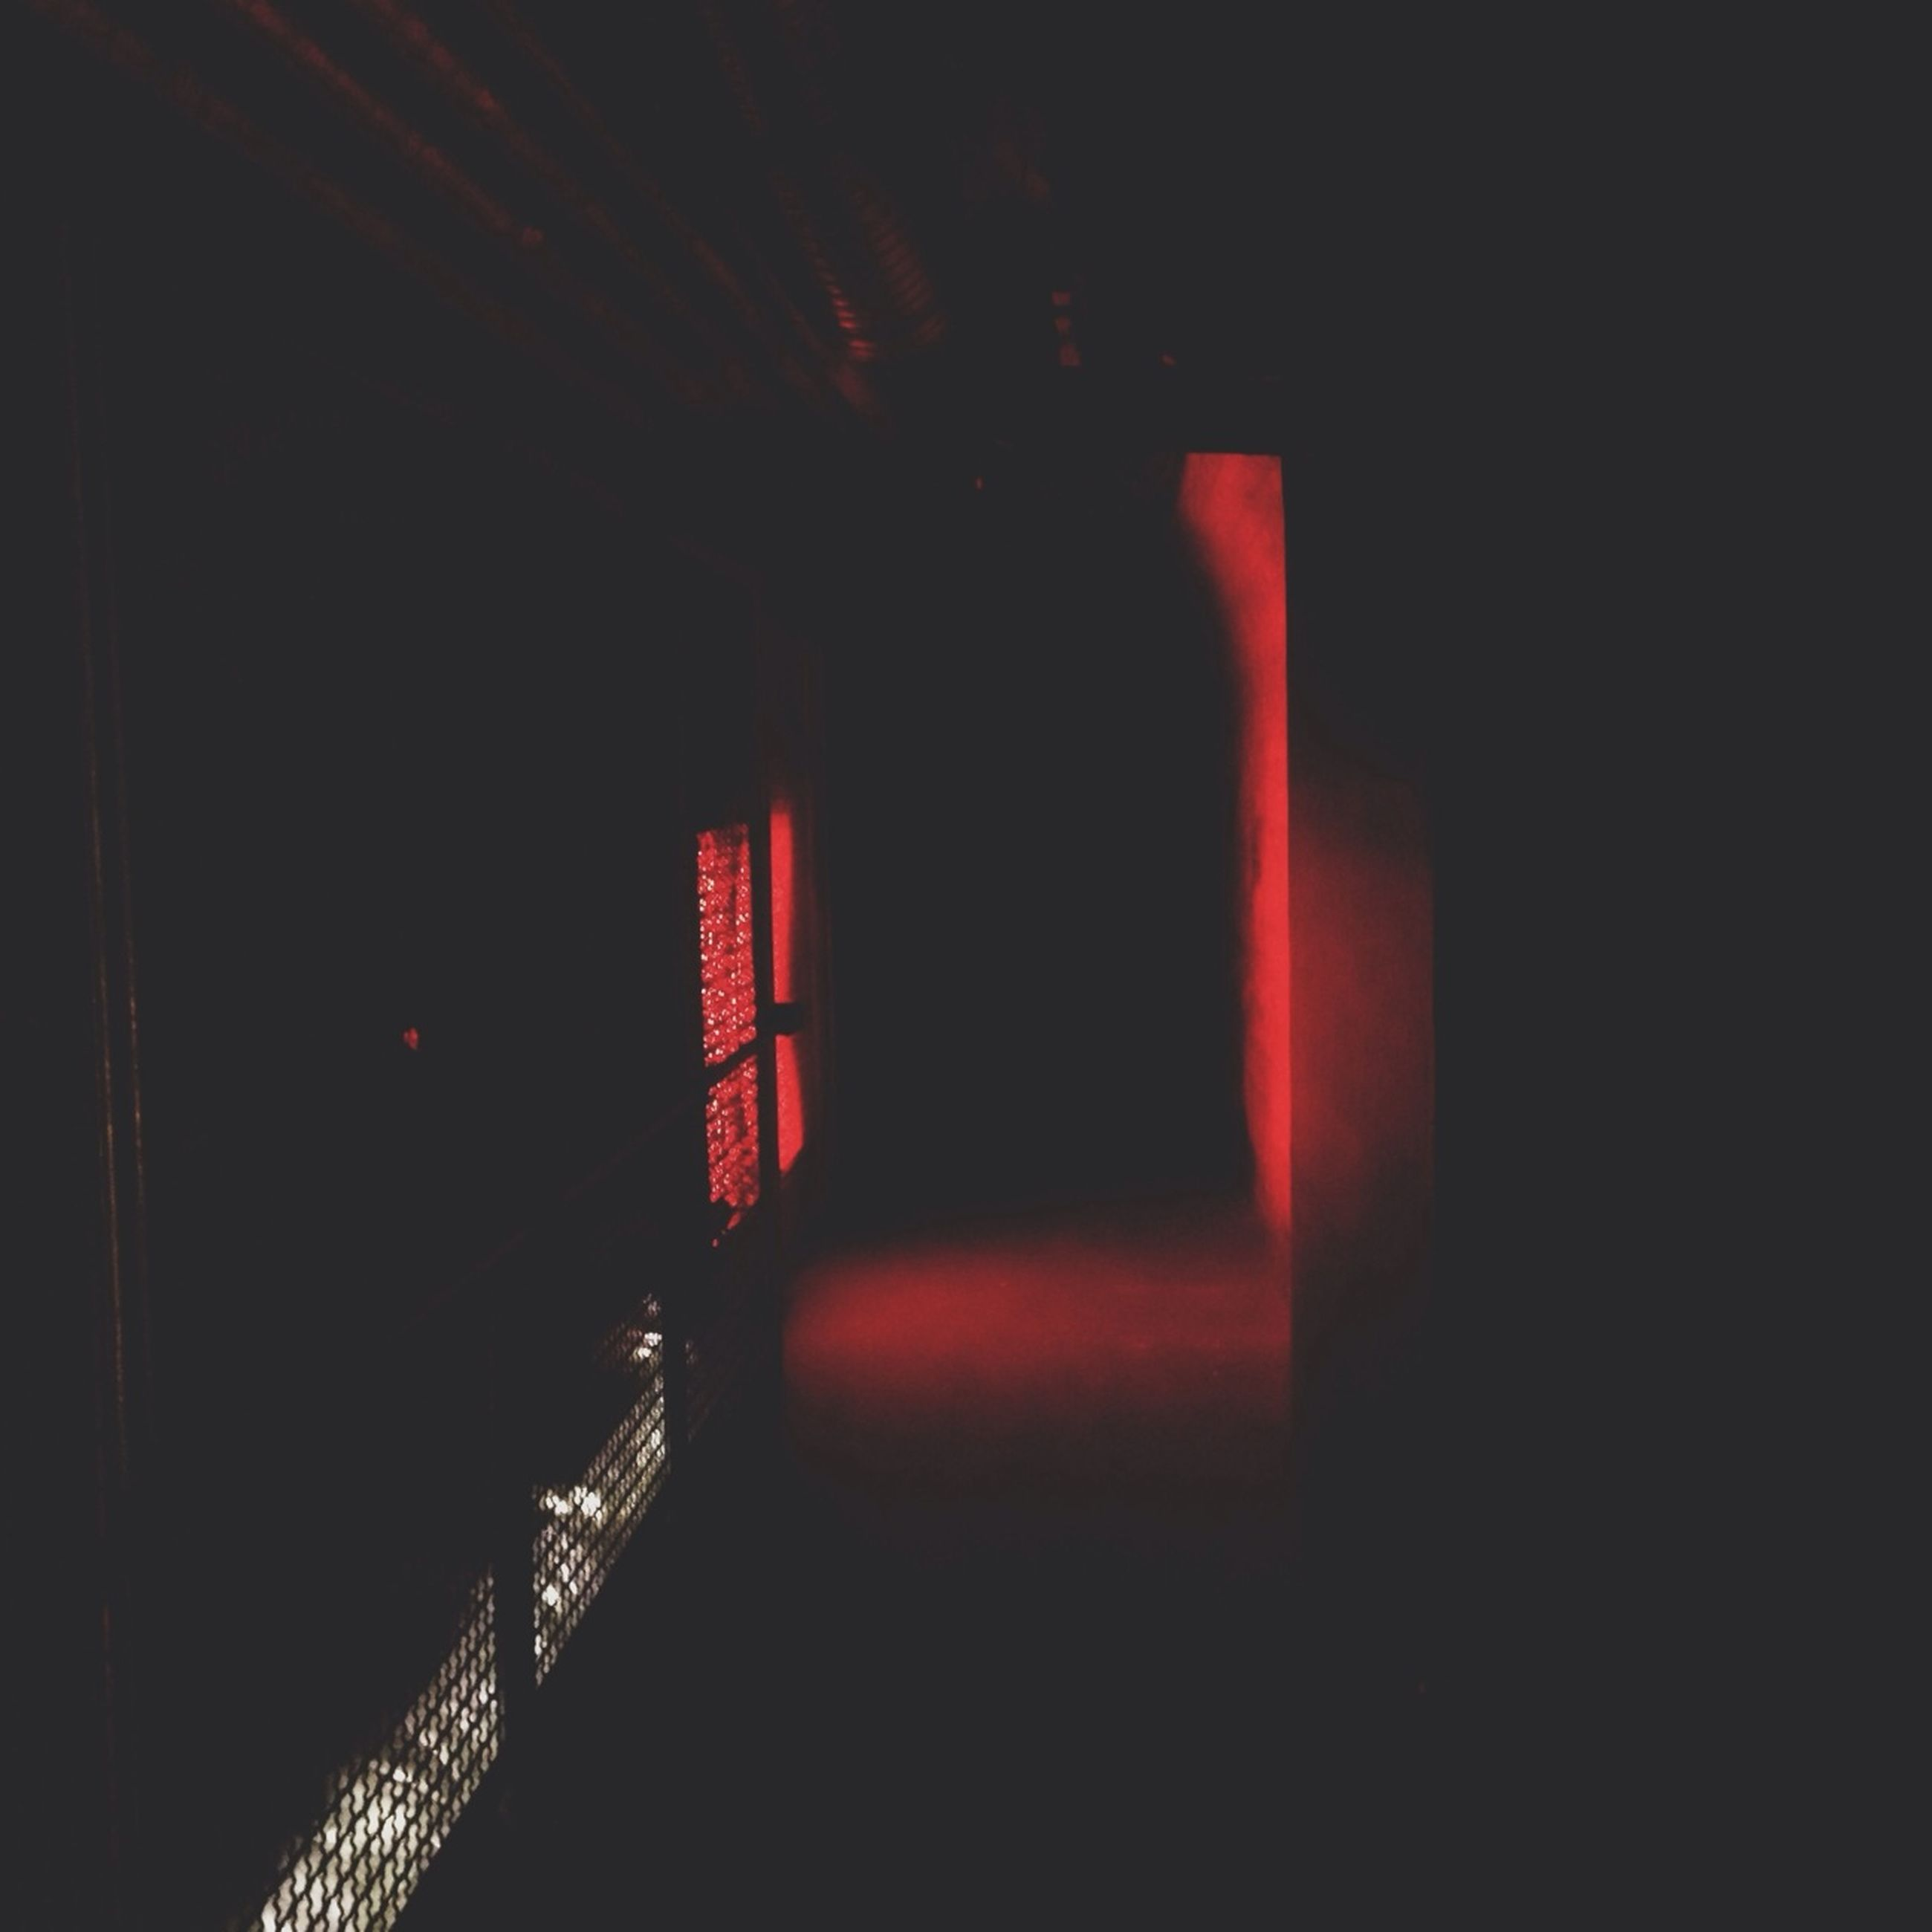 illuminated, indoors, architecture, built structure, night, red, dark, lighting equipment, copy space, light - natural phenomenon, no people, wall - building feature, low angle view, building, building exterior, glowing, light, railing, electric light, wall